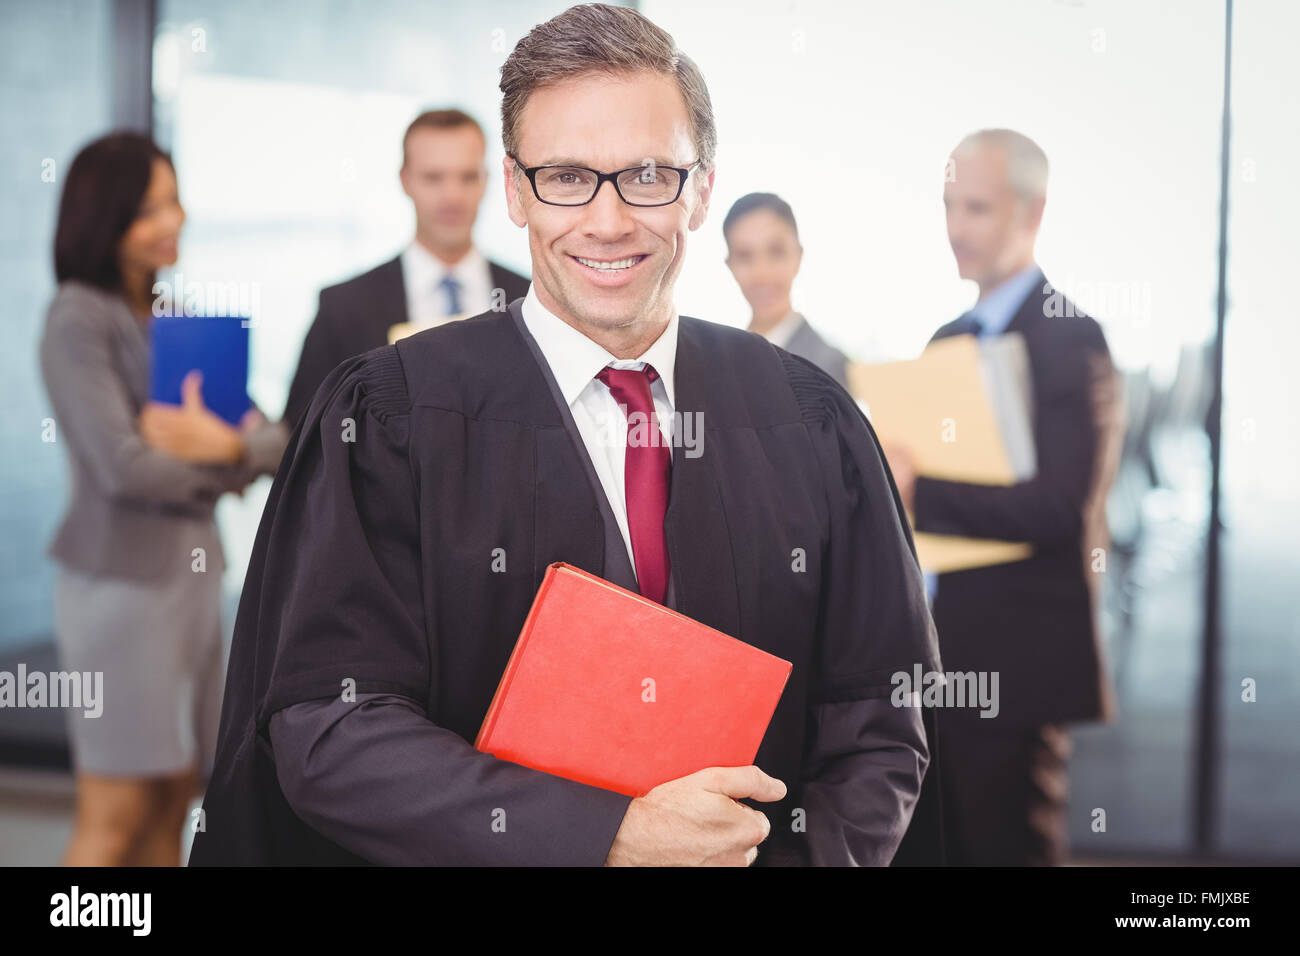 Lawyer holding a law book - Stock Image